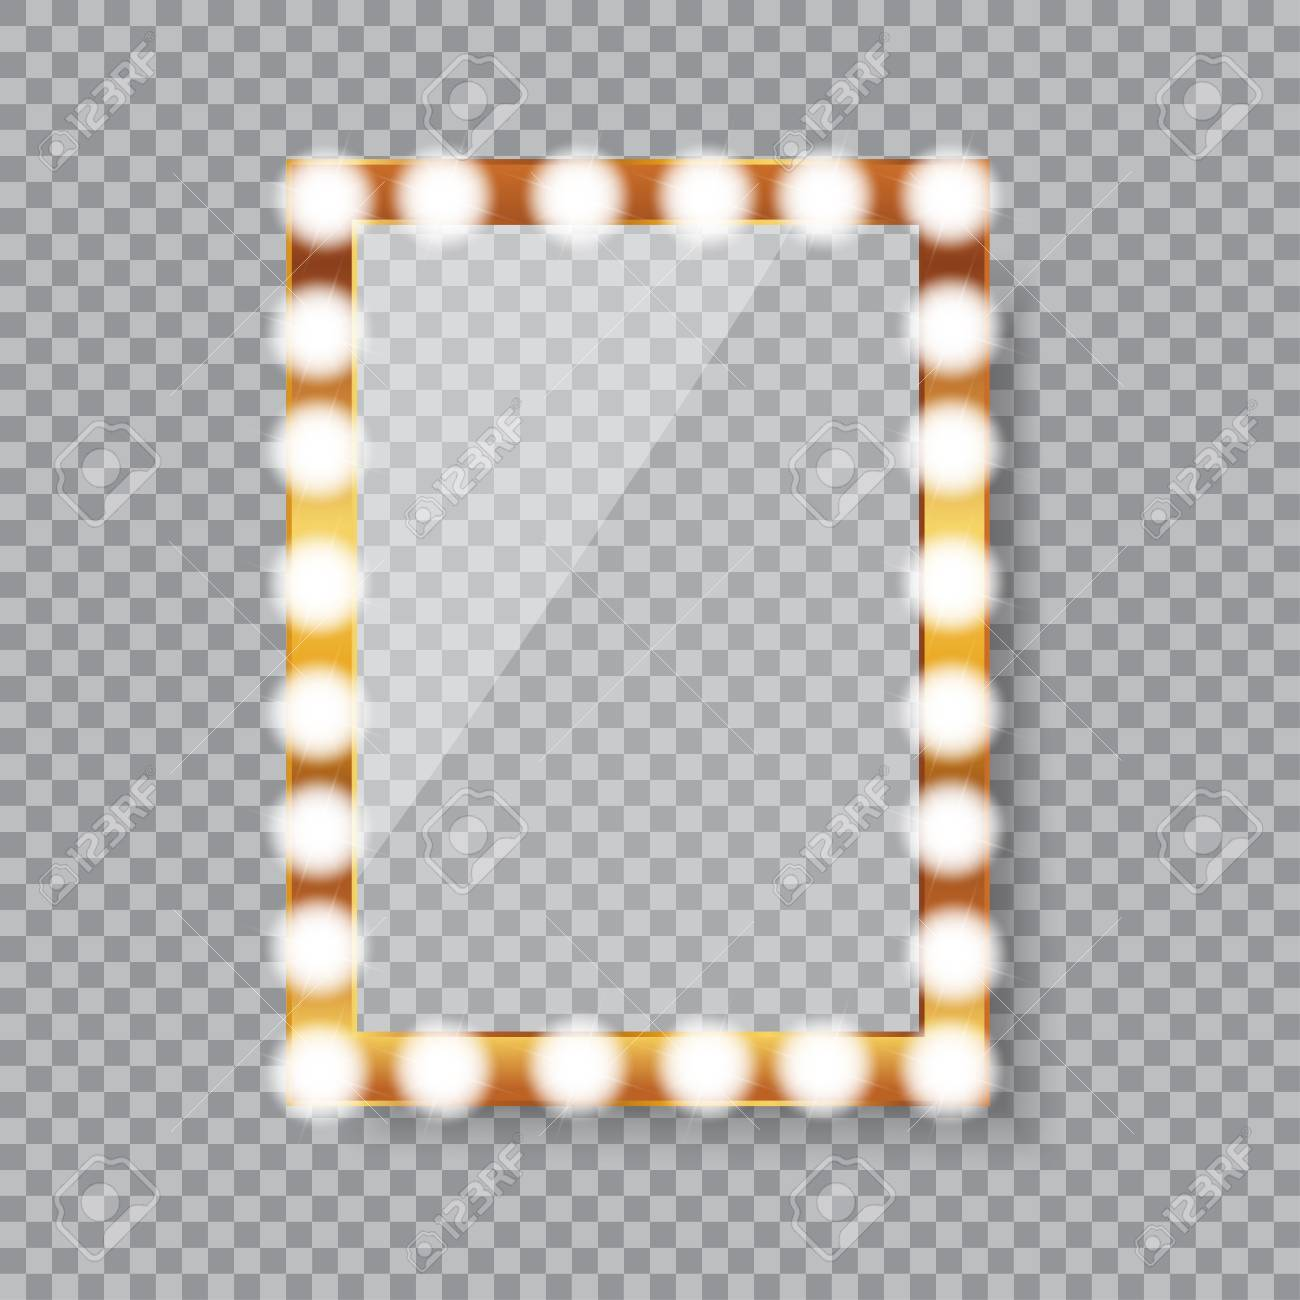 Rectangle Vanity Mirror With Light Bulbs Royalty Free Cliparts Vectors And Stock Illustration Image 122471535